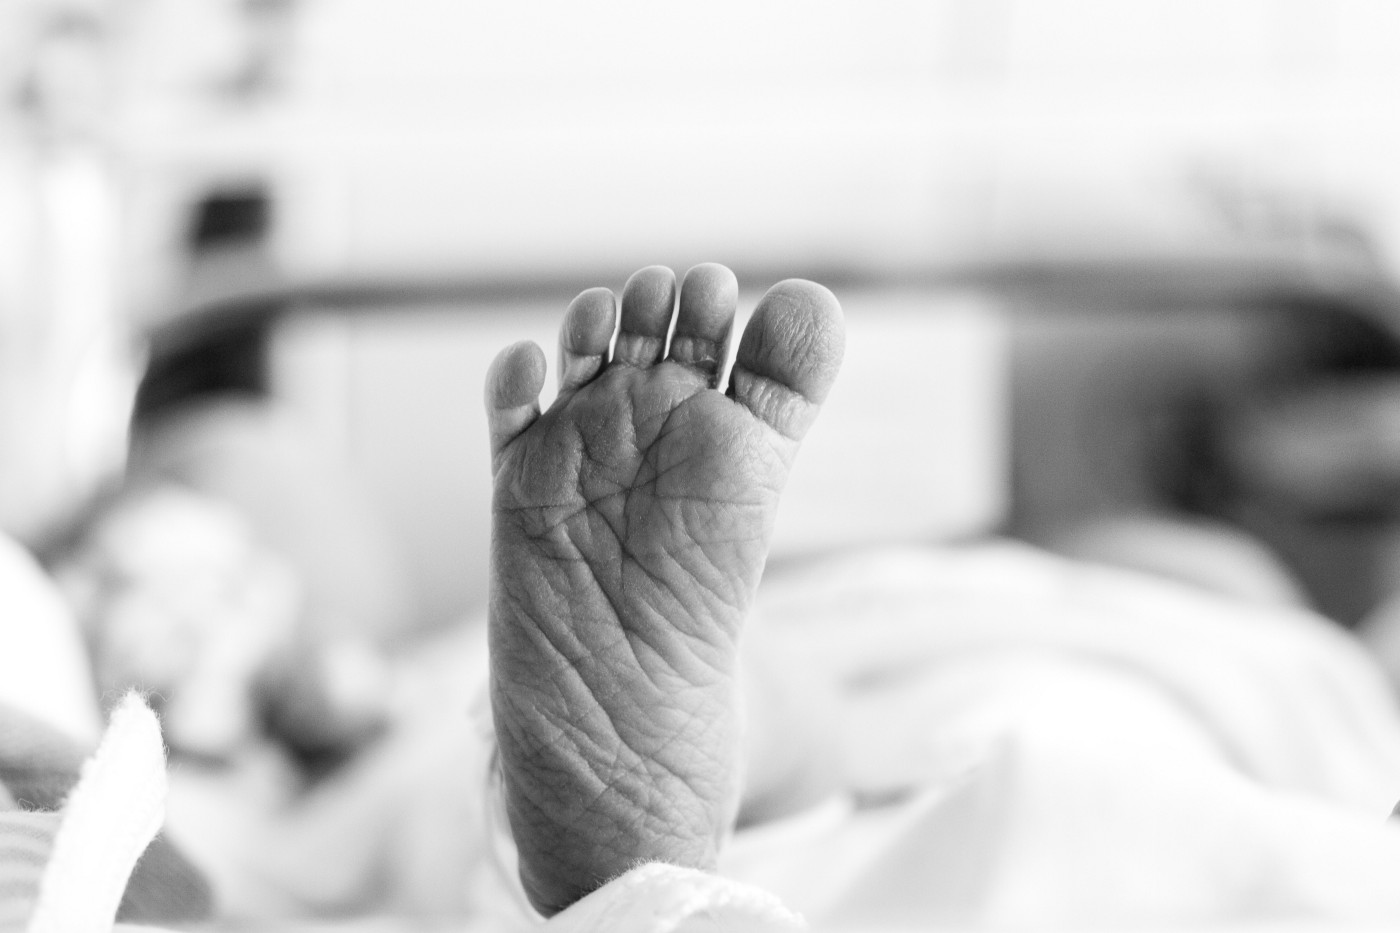 A newborn's foot. Wrinkly and perfect.